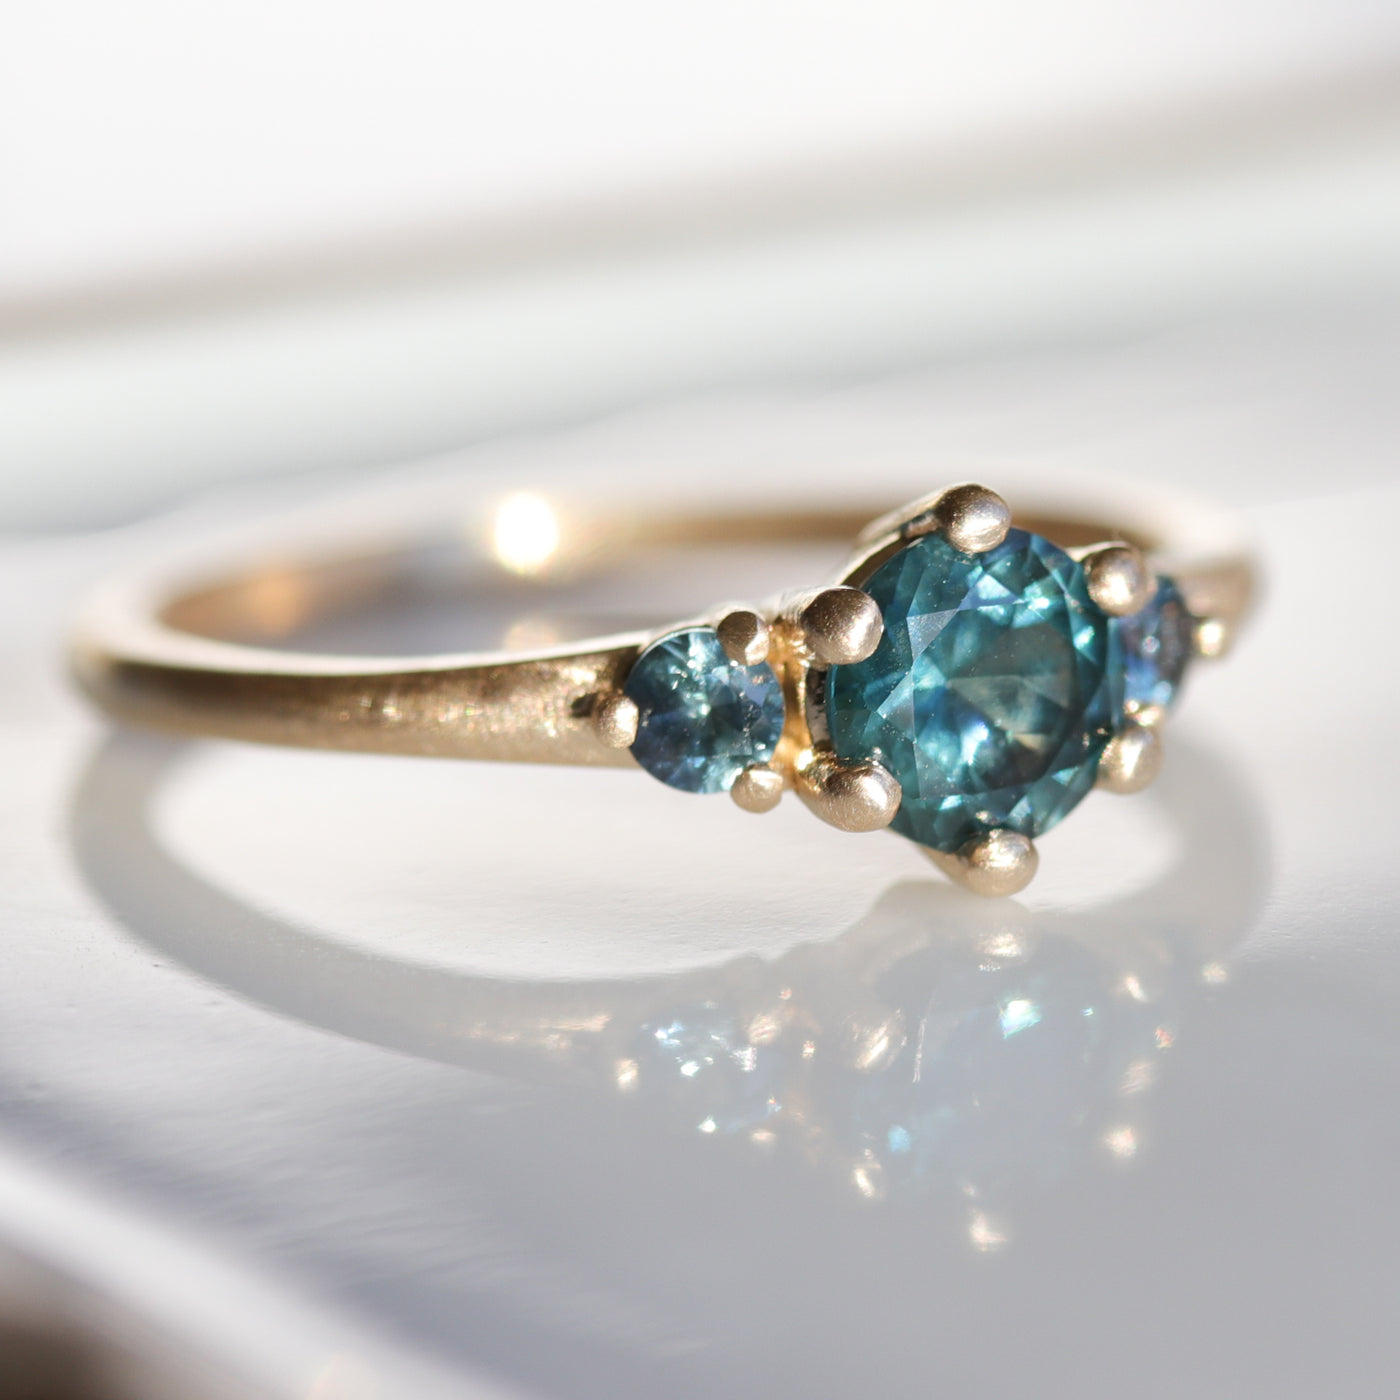 Prong-set Three Stone Ring with Montana Sapphires